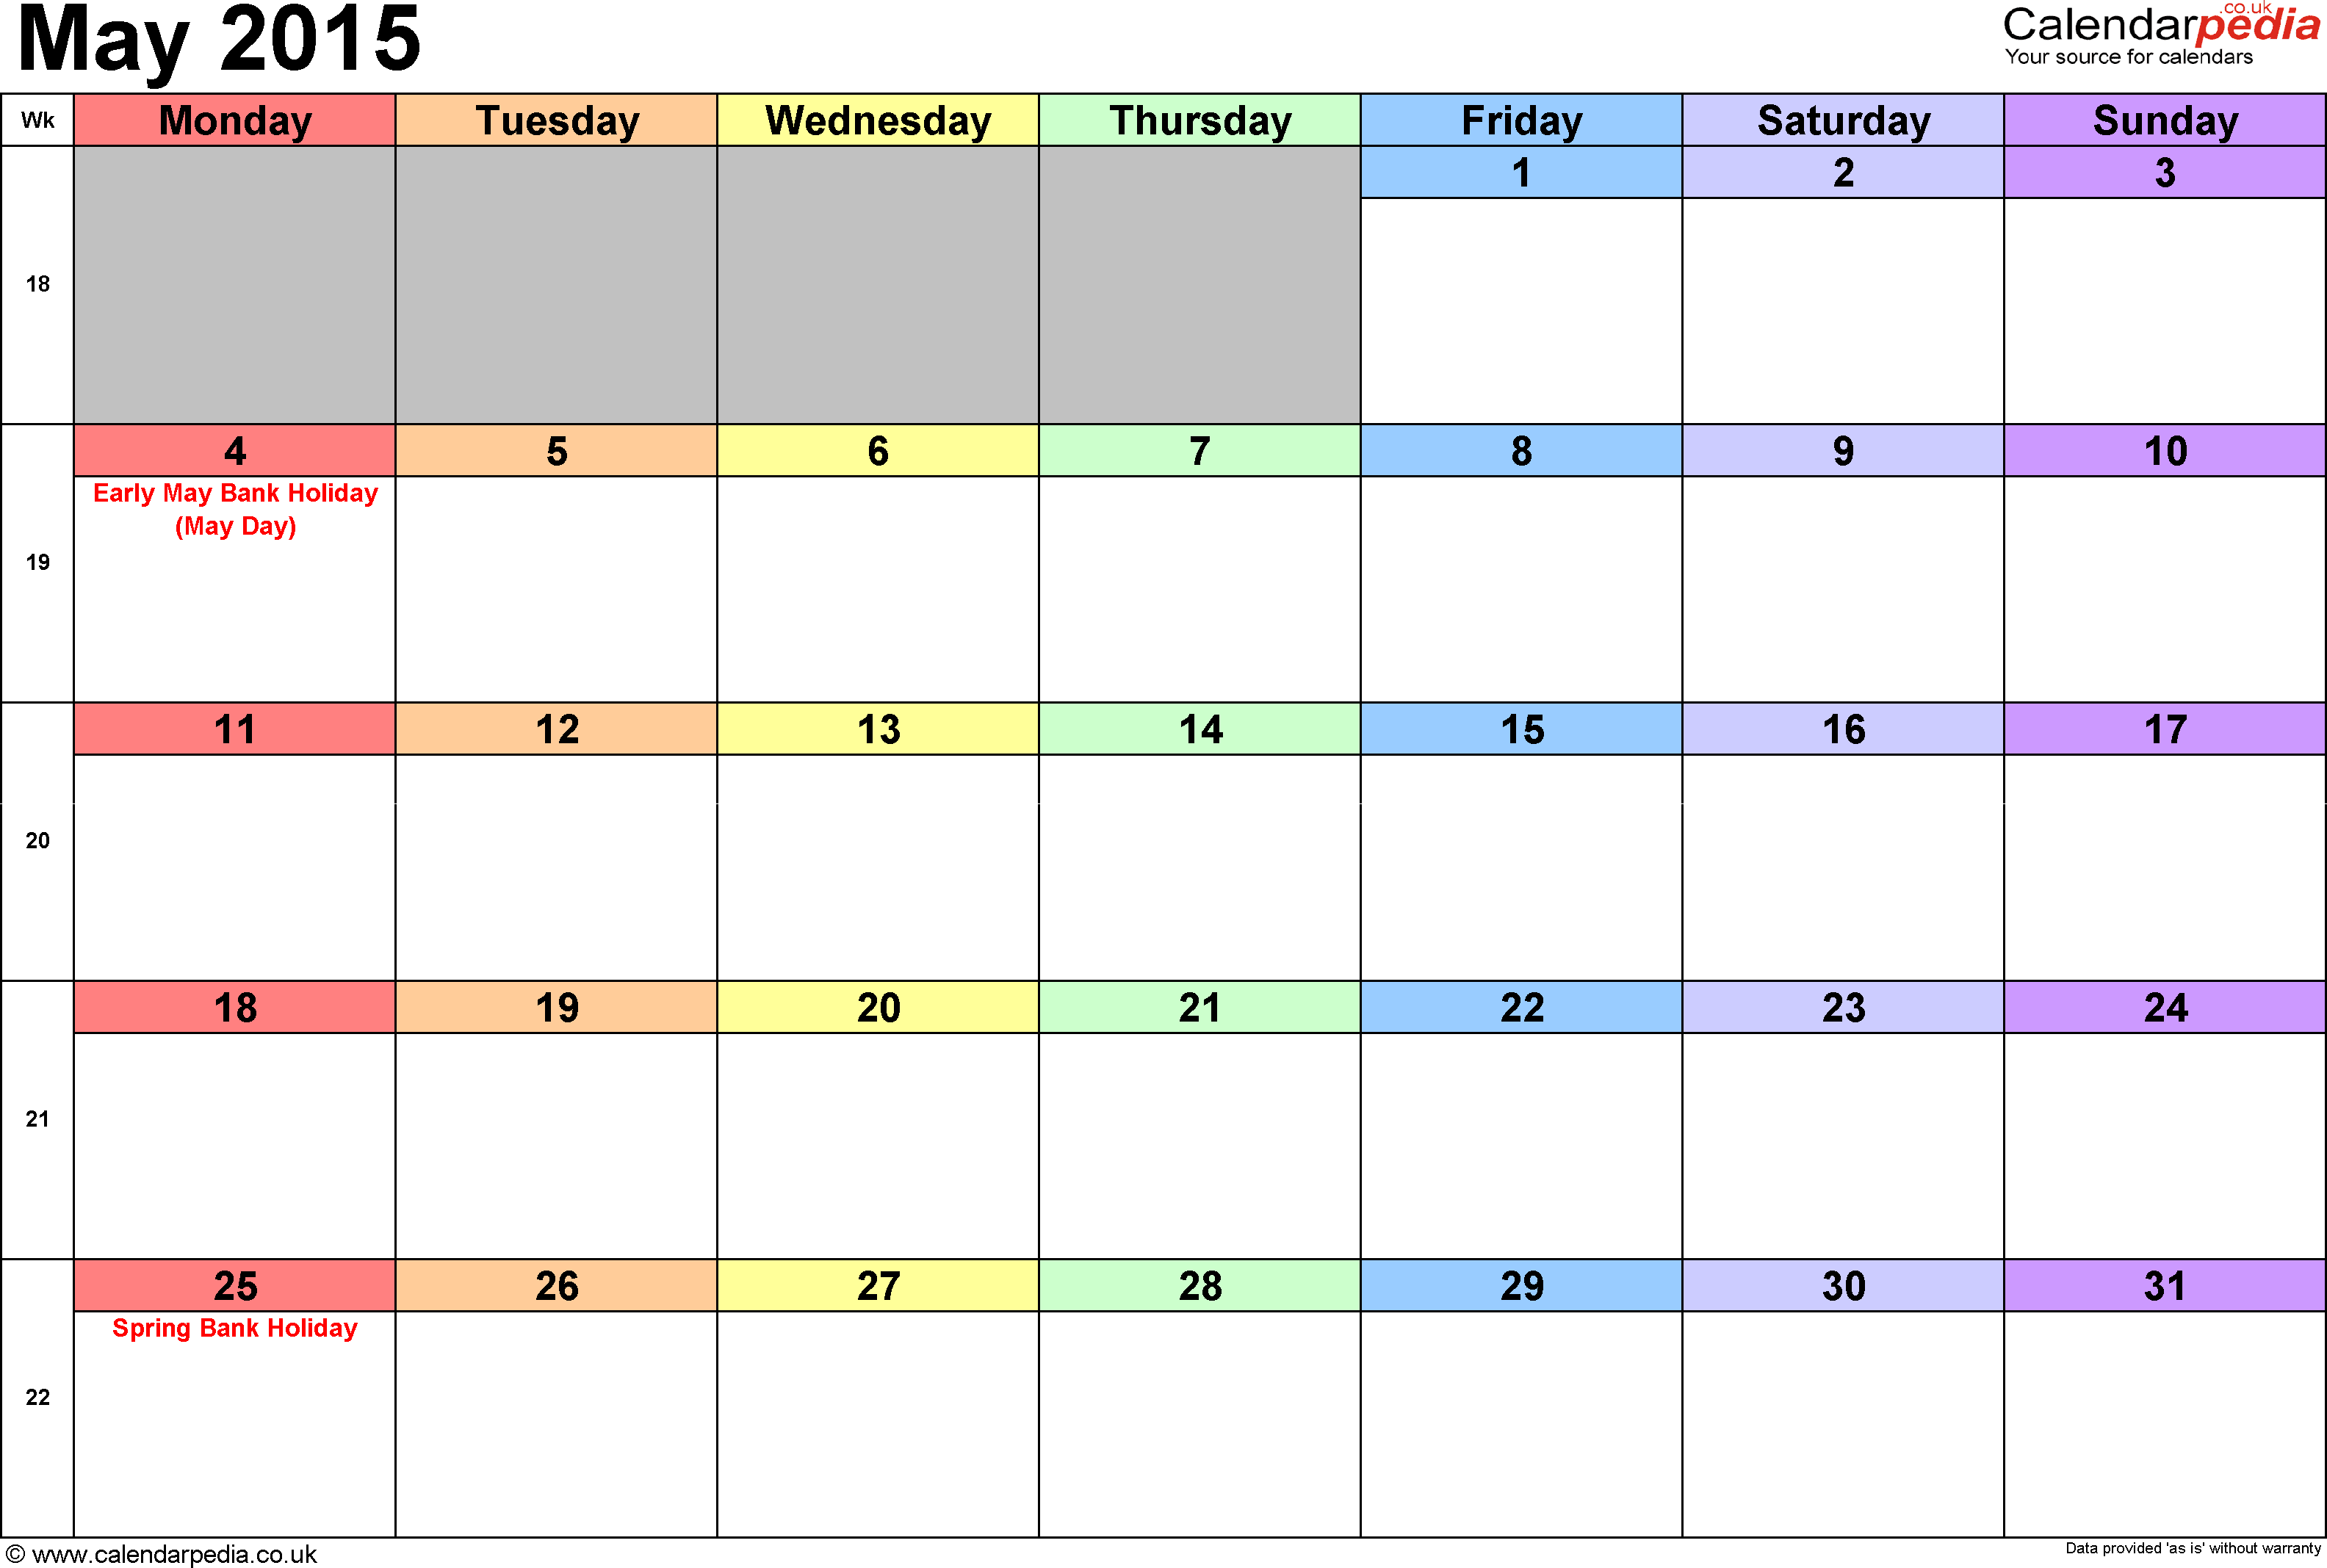 Calendar May 2015, landscape orientation, 1 page, with UK bank holidays and week numbers